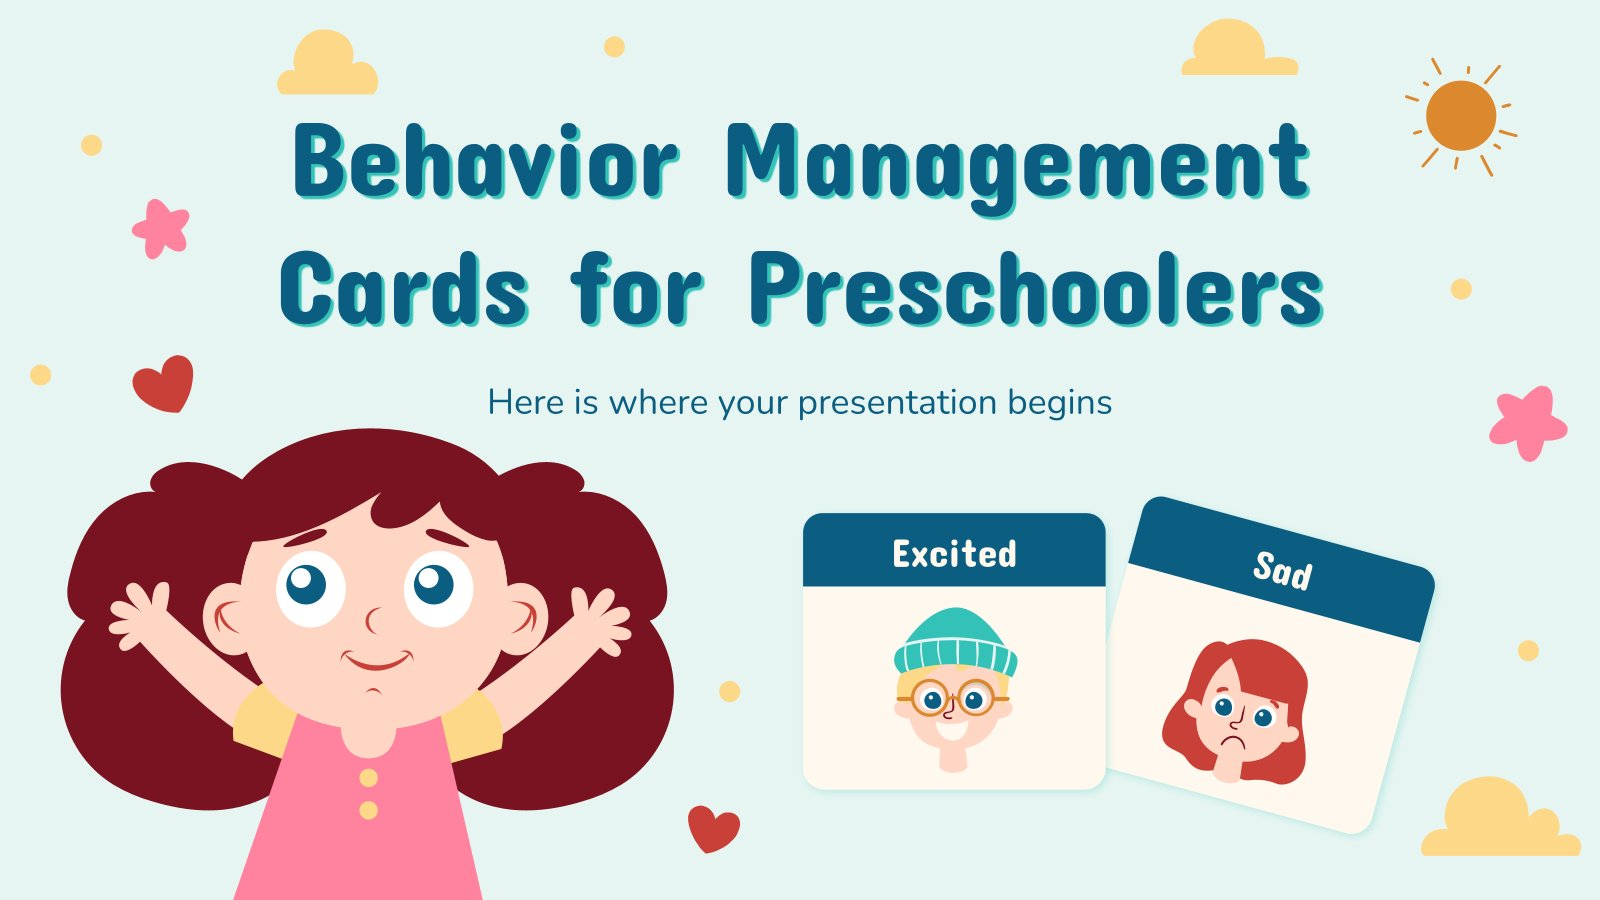 Behavior Management Cards for Preschoolers presentation template